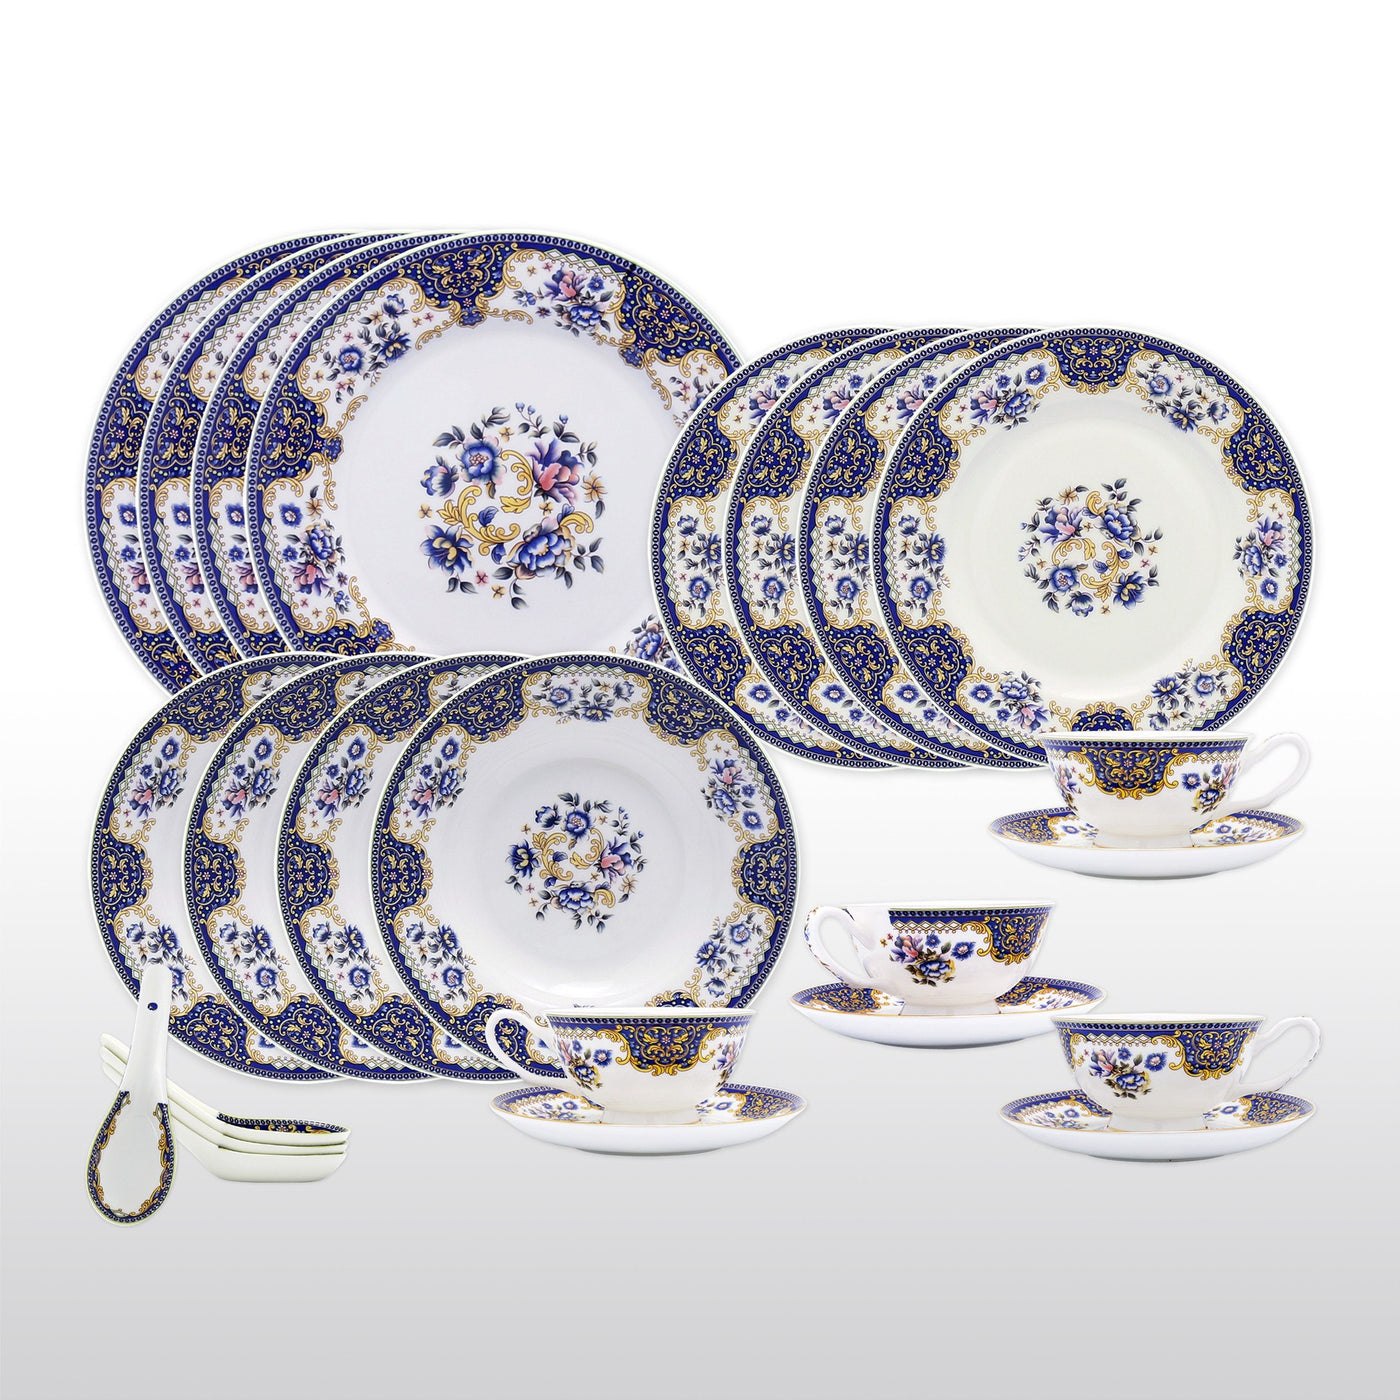 Patterned Dinnerware Sets Magnificent Design Ideas